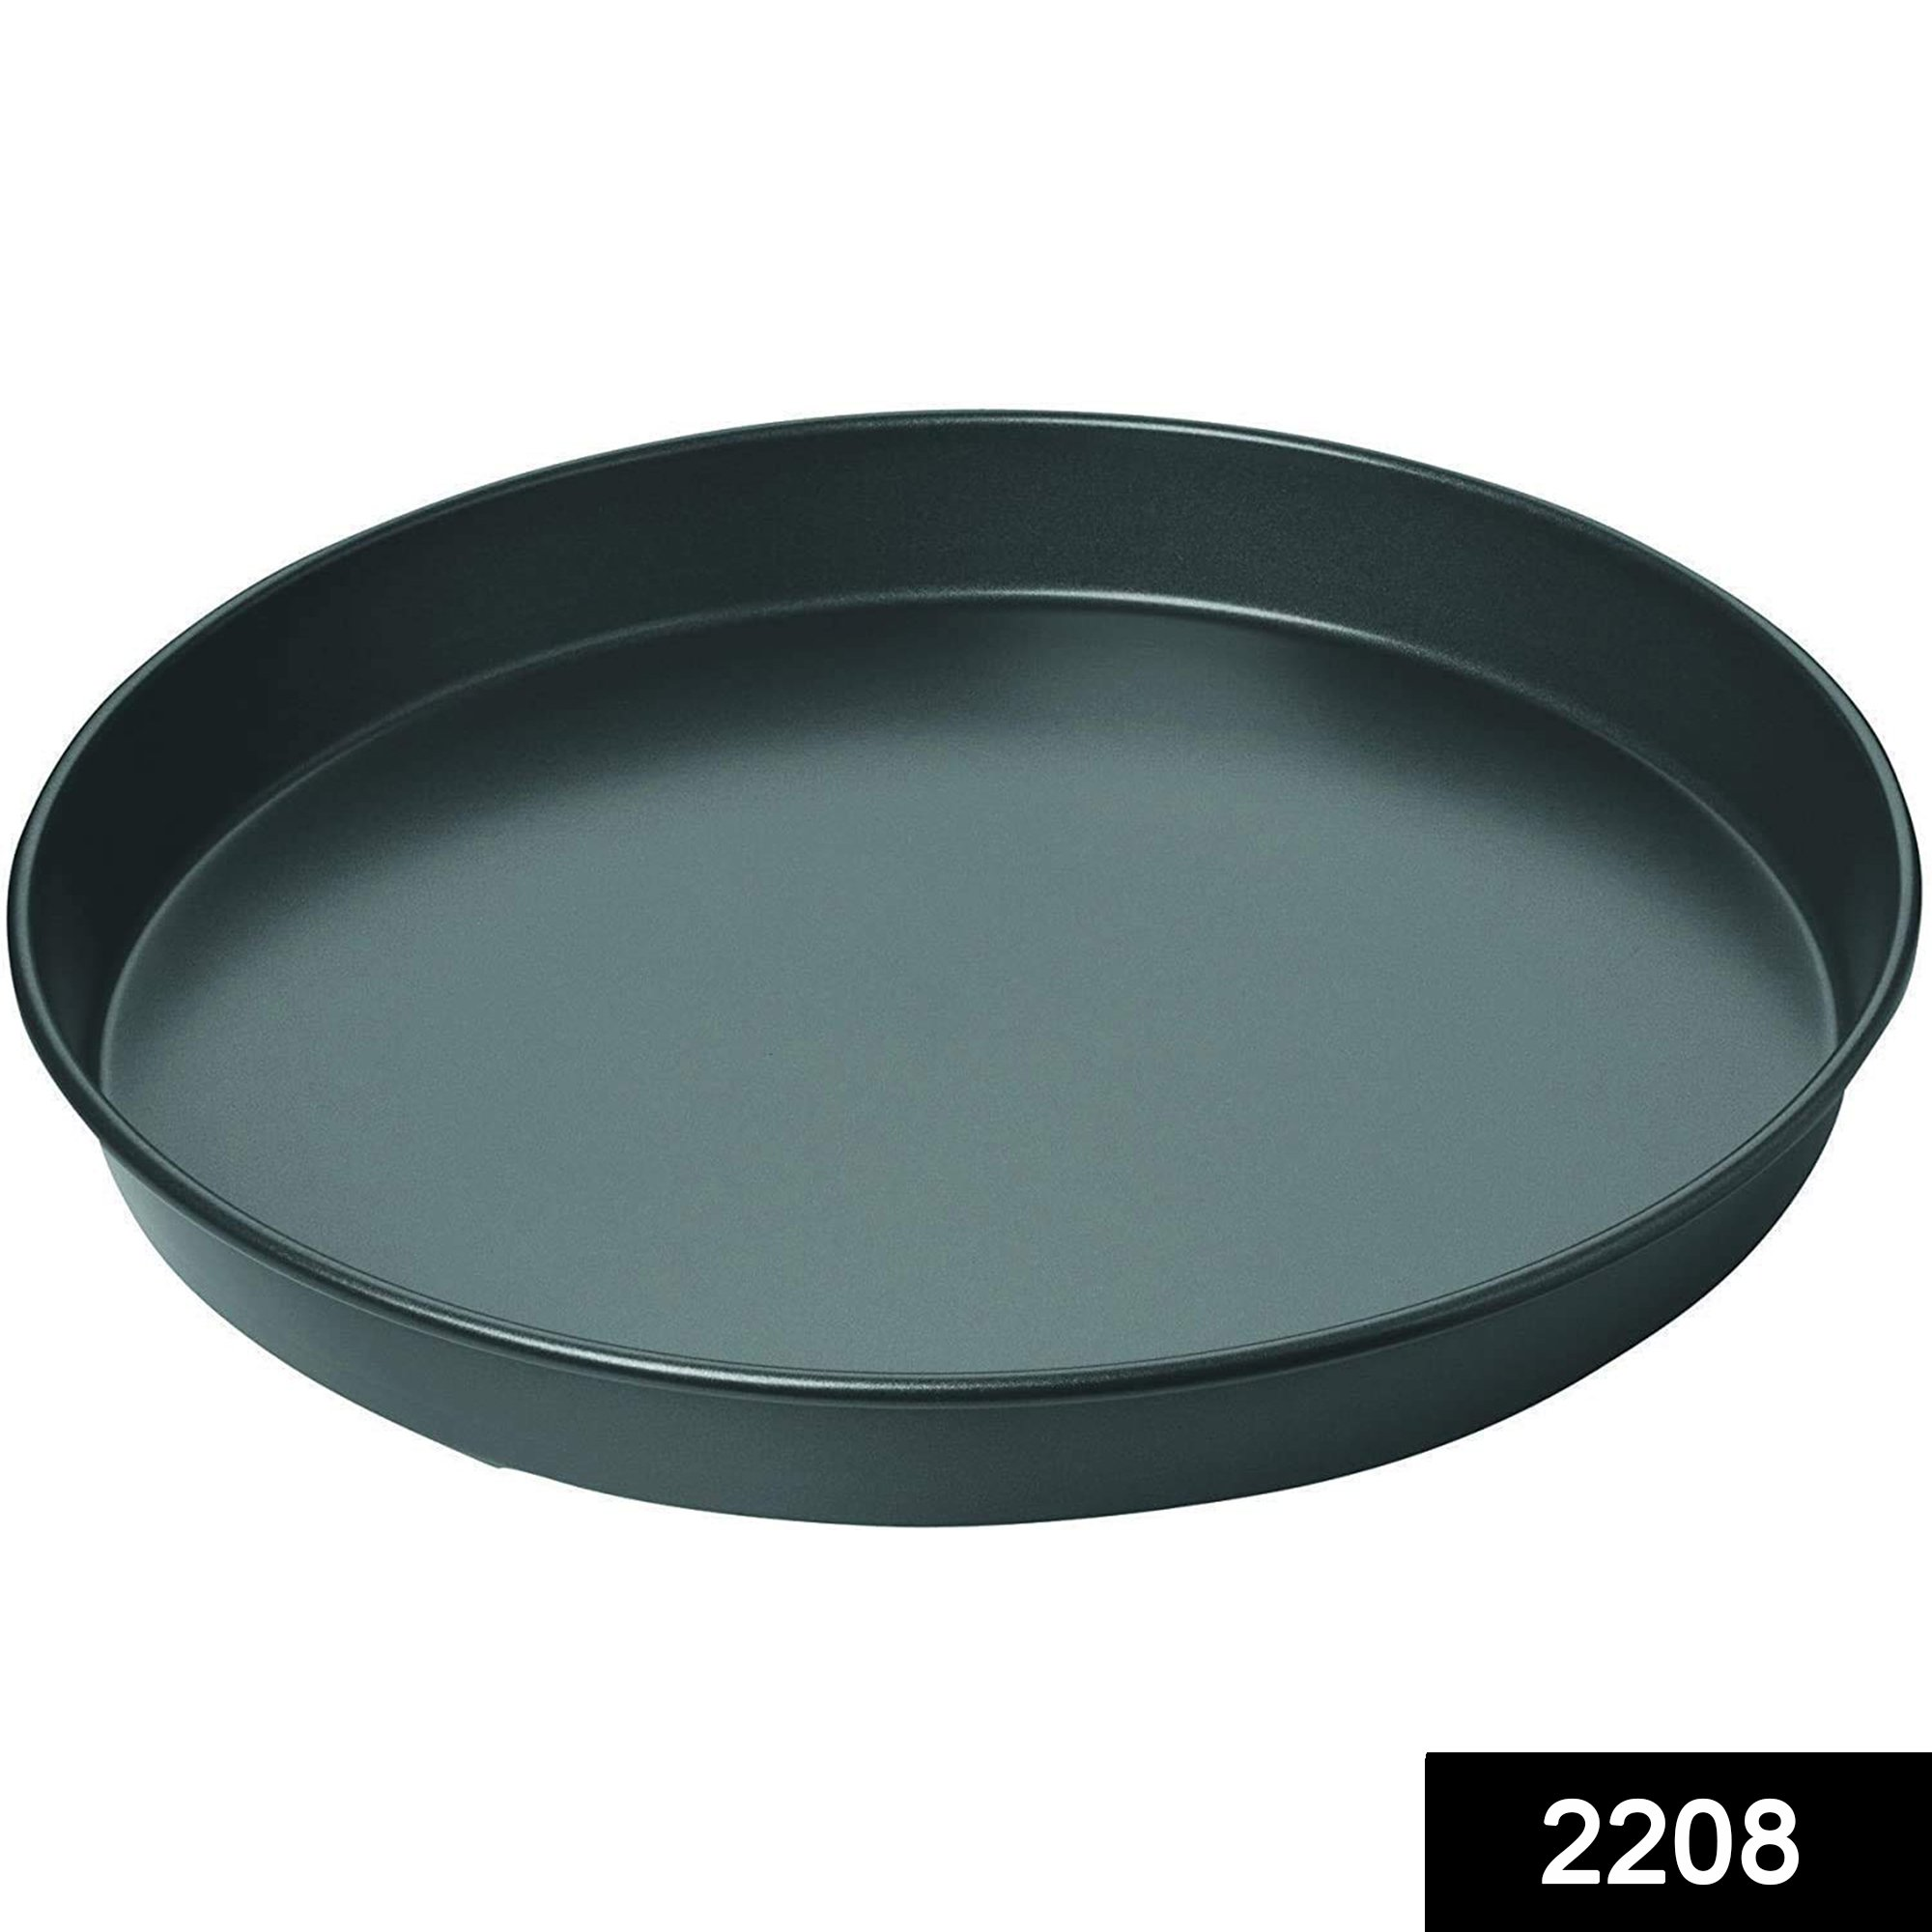 2208 Steel Non-Stick Round Plate Cake Pizza Tray Baking Mould -